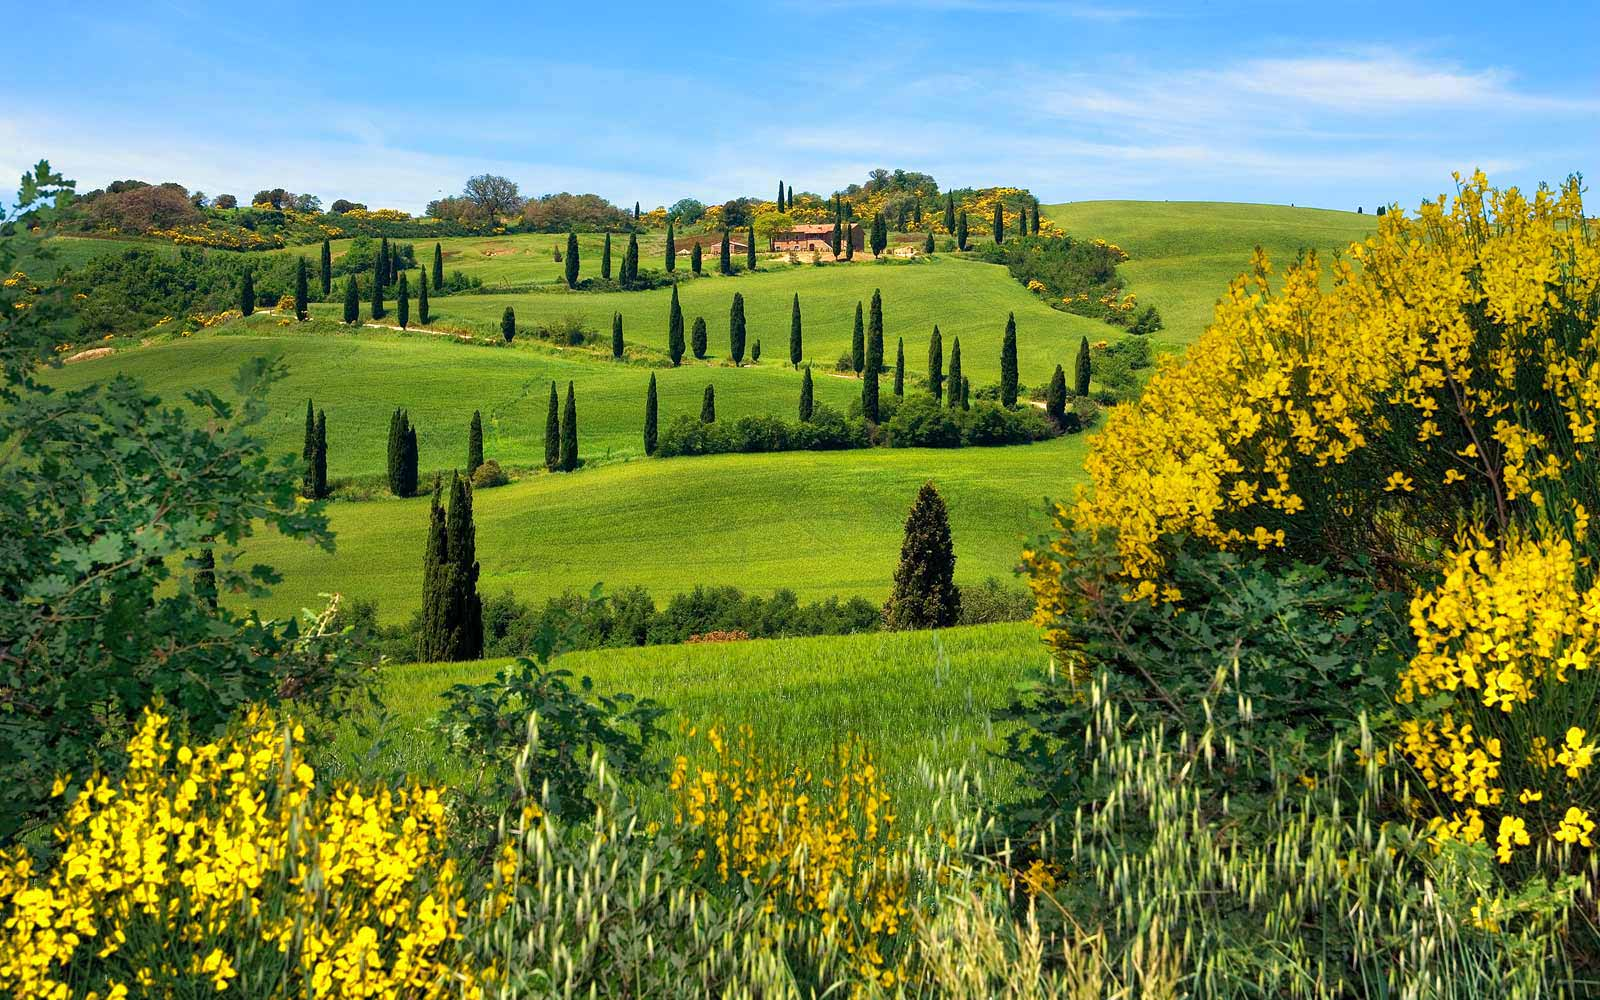 Fonteverde tuscany coutryside